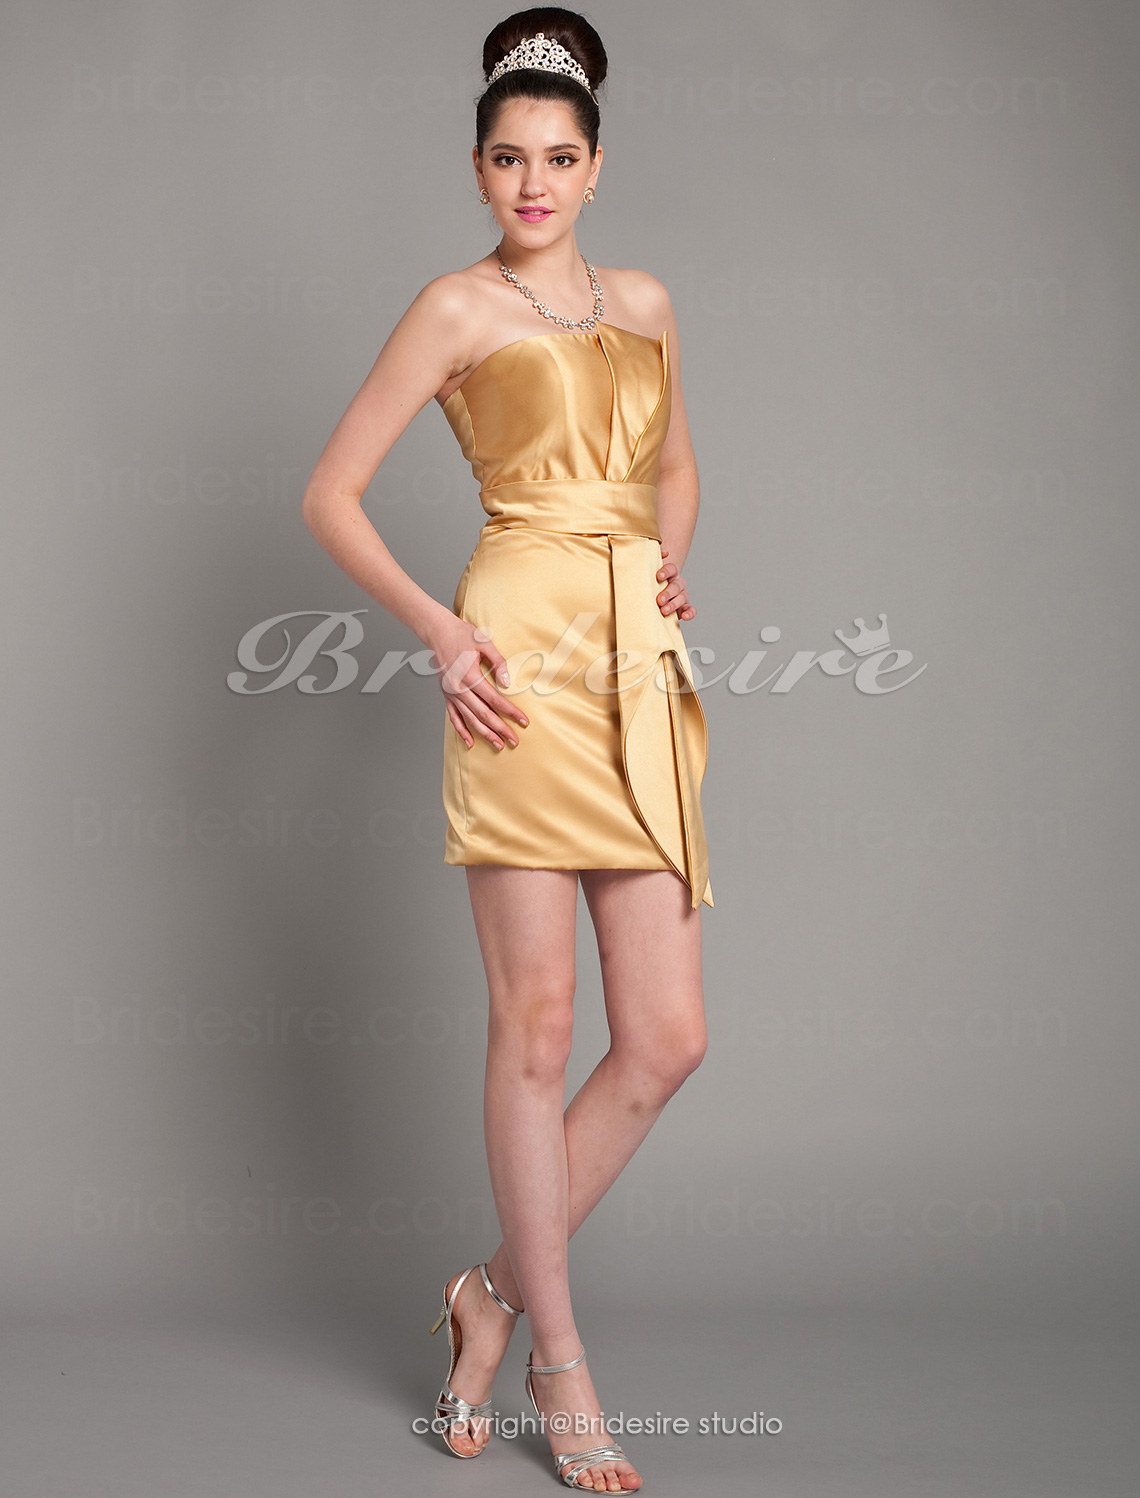 Sheath/ Column Short/ Mini Satin Strapless Cocktail Dress inspired by Anne Hathaway